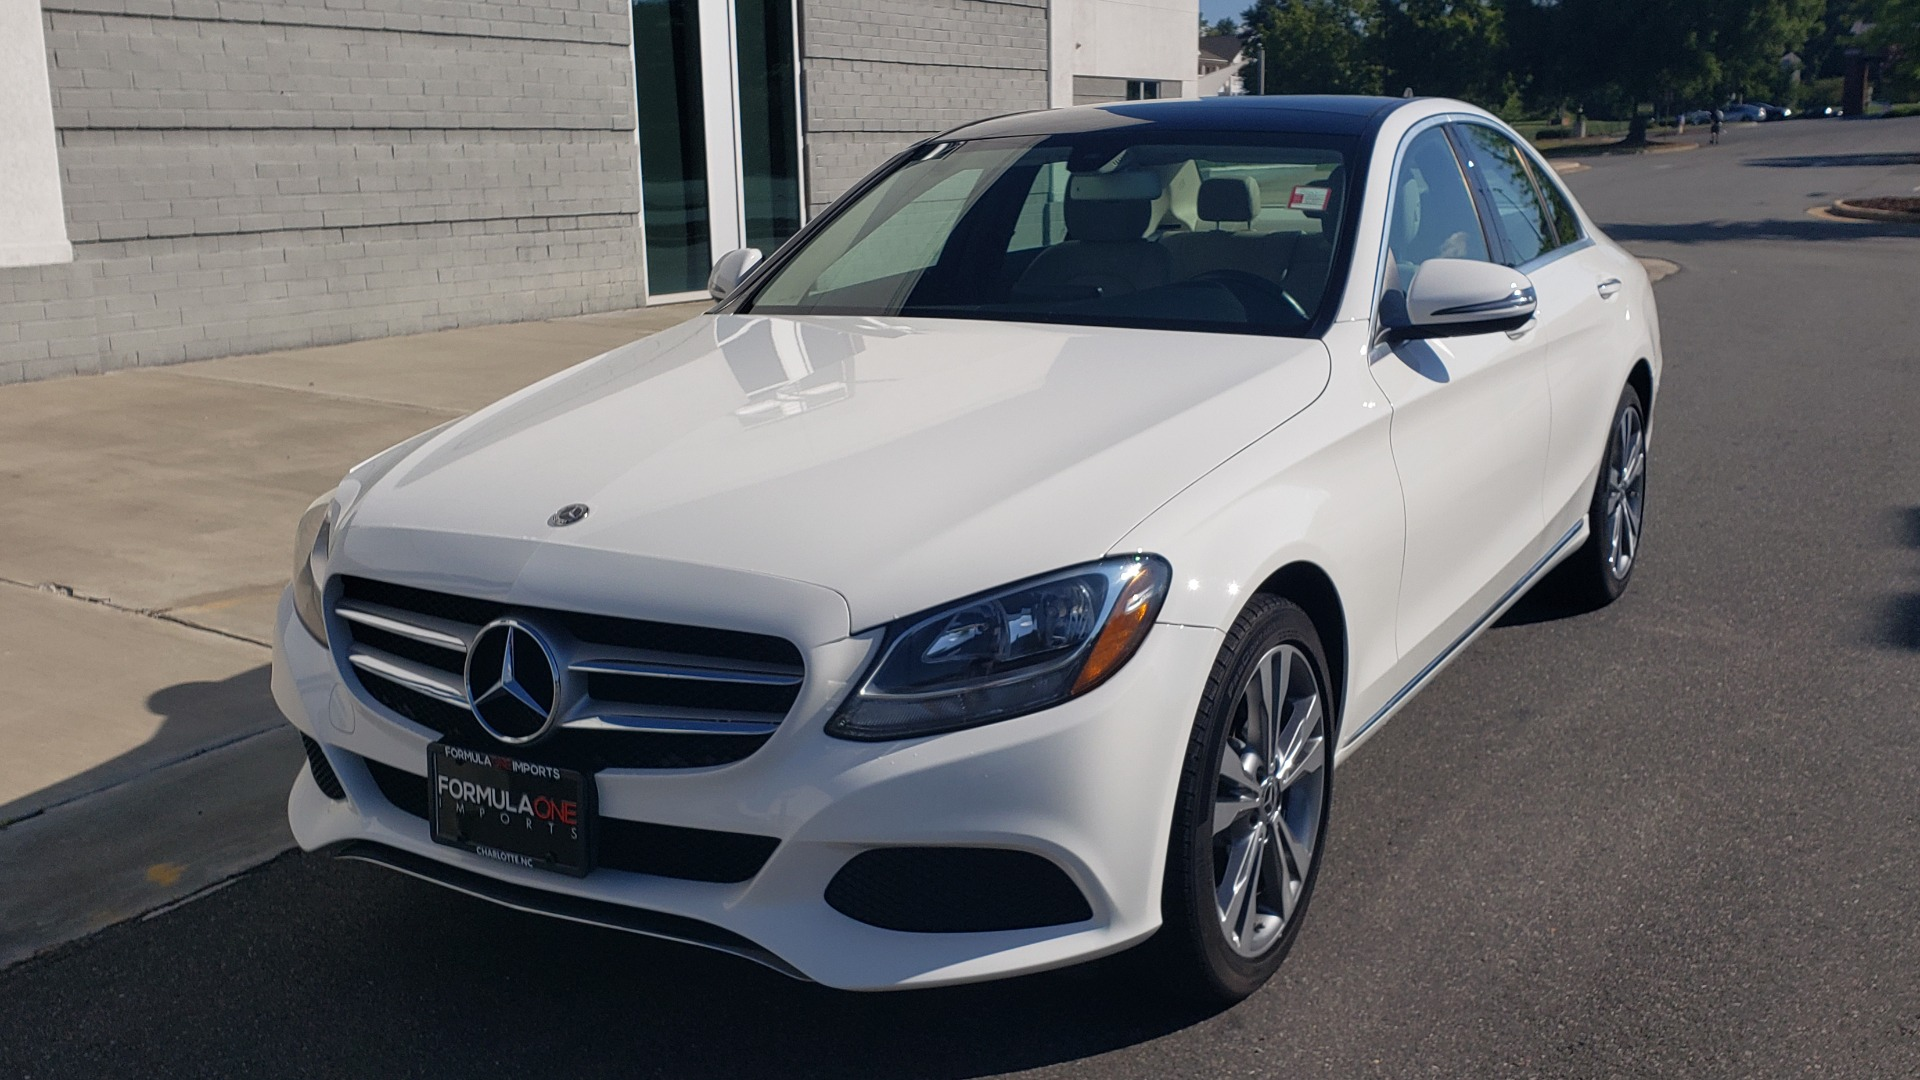 Used 2018 Mercedes-Benz C-Class C 300 4MATIC PREMIUM / APPLE CARPLAY / PANO-ROOF / REARVIEW for sale $33,795 at Formula Imports in Charlotte NC 28227 1